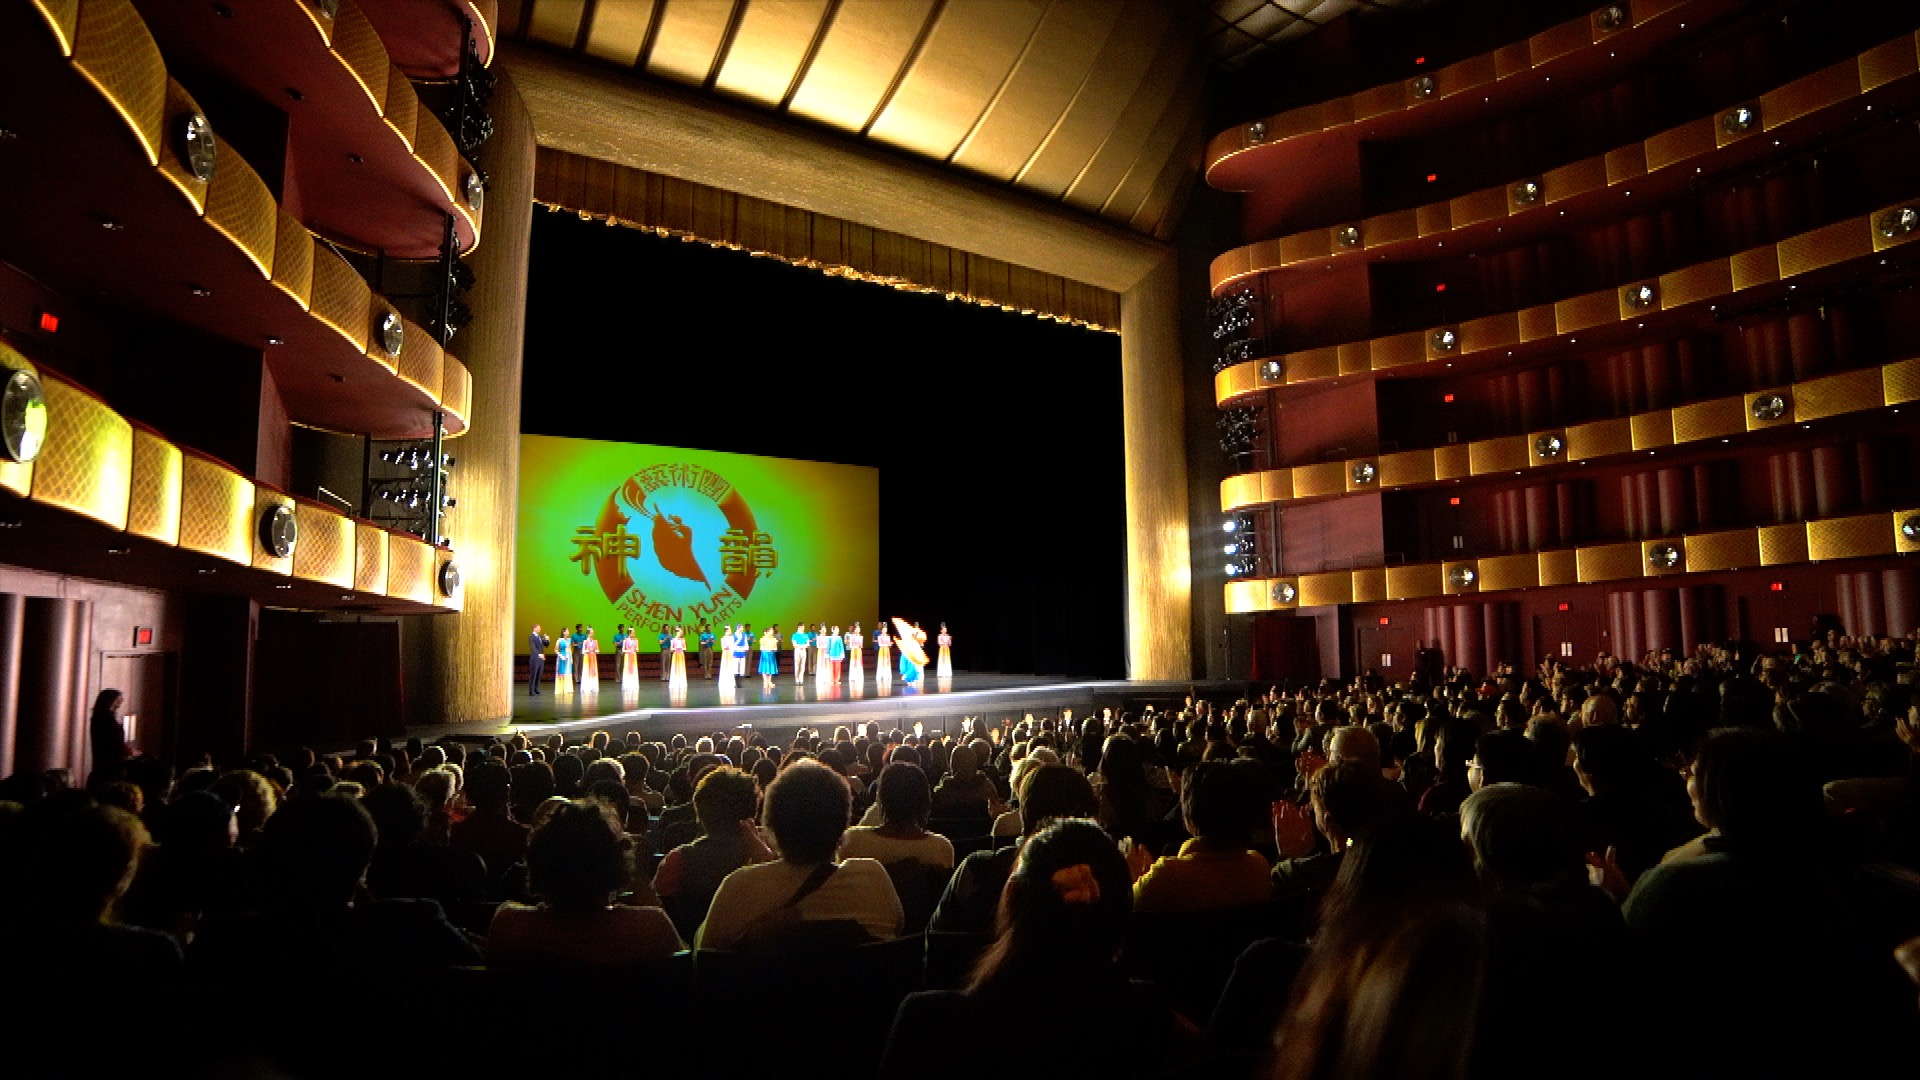 """Retired Government officer: Shen Yun Performance """"Takes You Into Another World"""""""